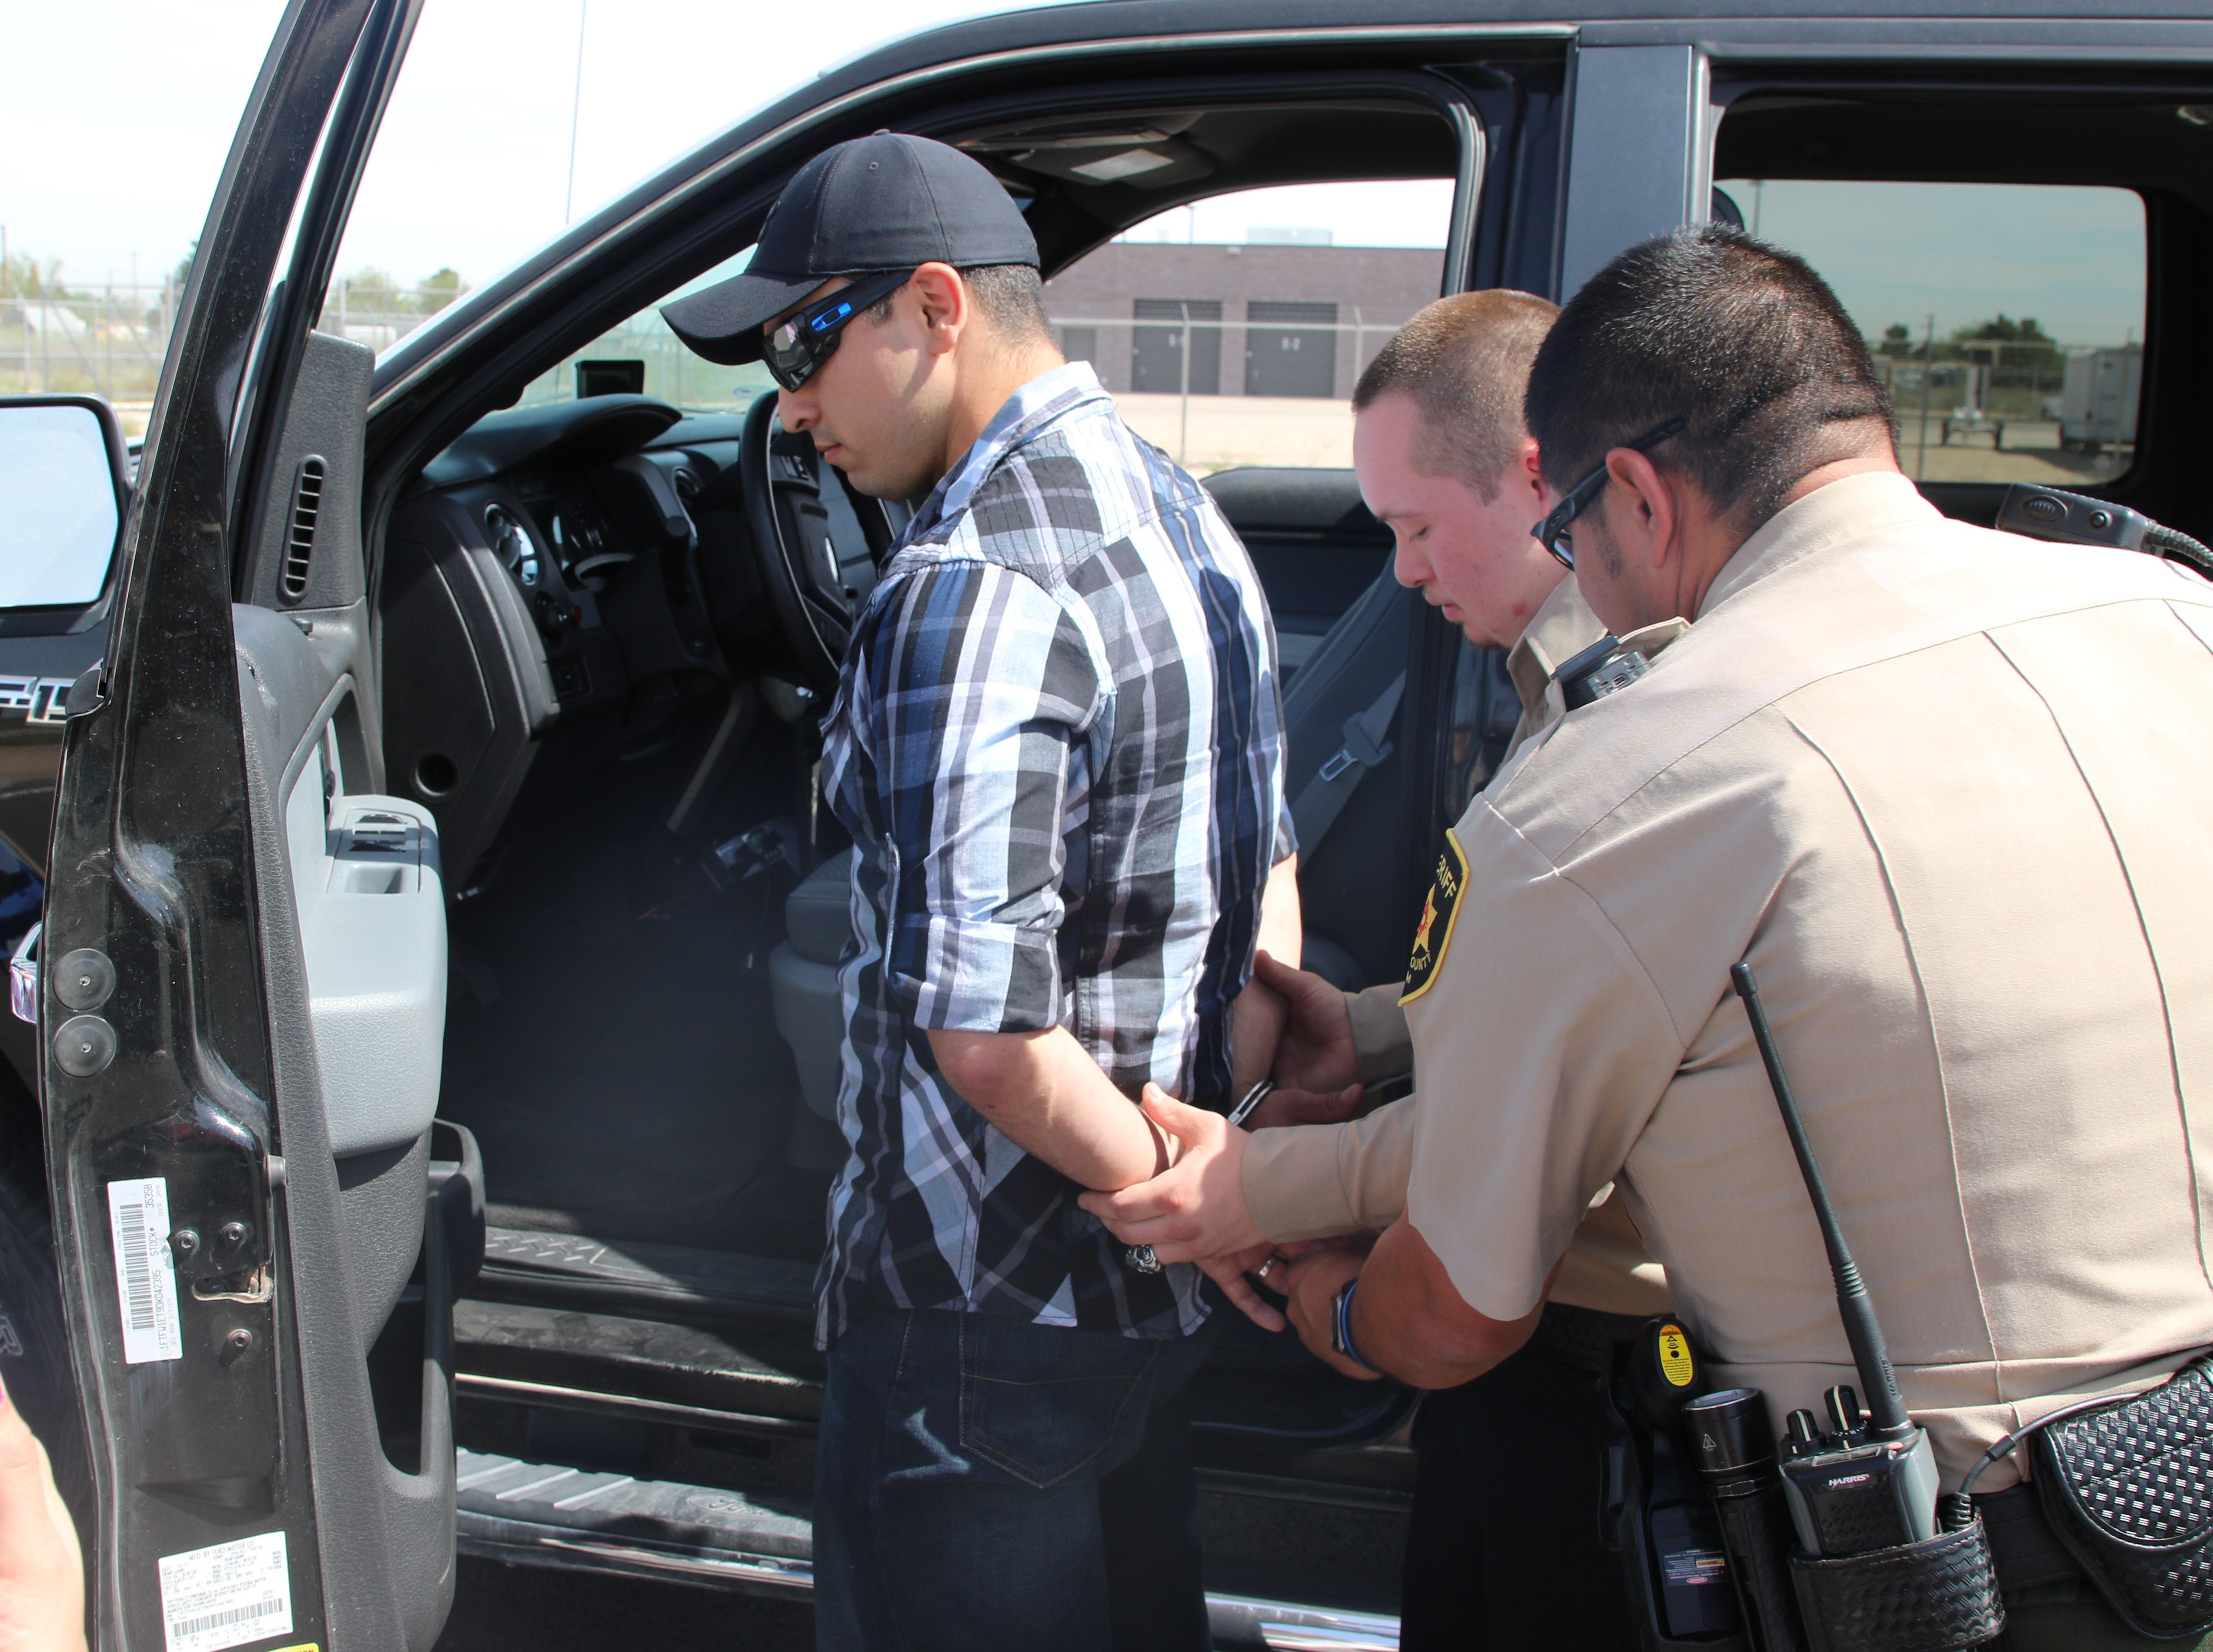 (From left)-Eddy County Sheriff's deputy Alexander Duchene is arrested by honorary sheriff's deputy Roman Leos and Adrian Rodriguez April 15. Leos' received a special birthday present from Eddy County Sheriff Mark Cage.